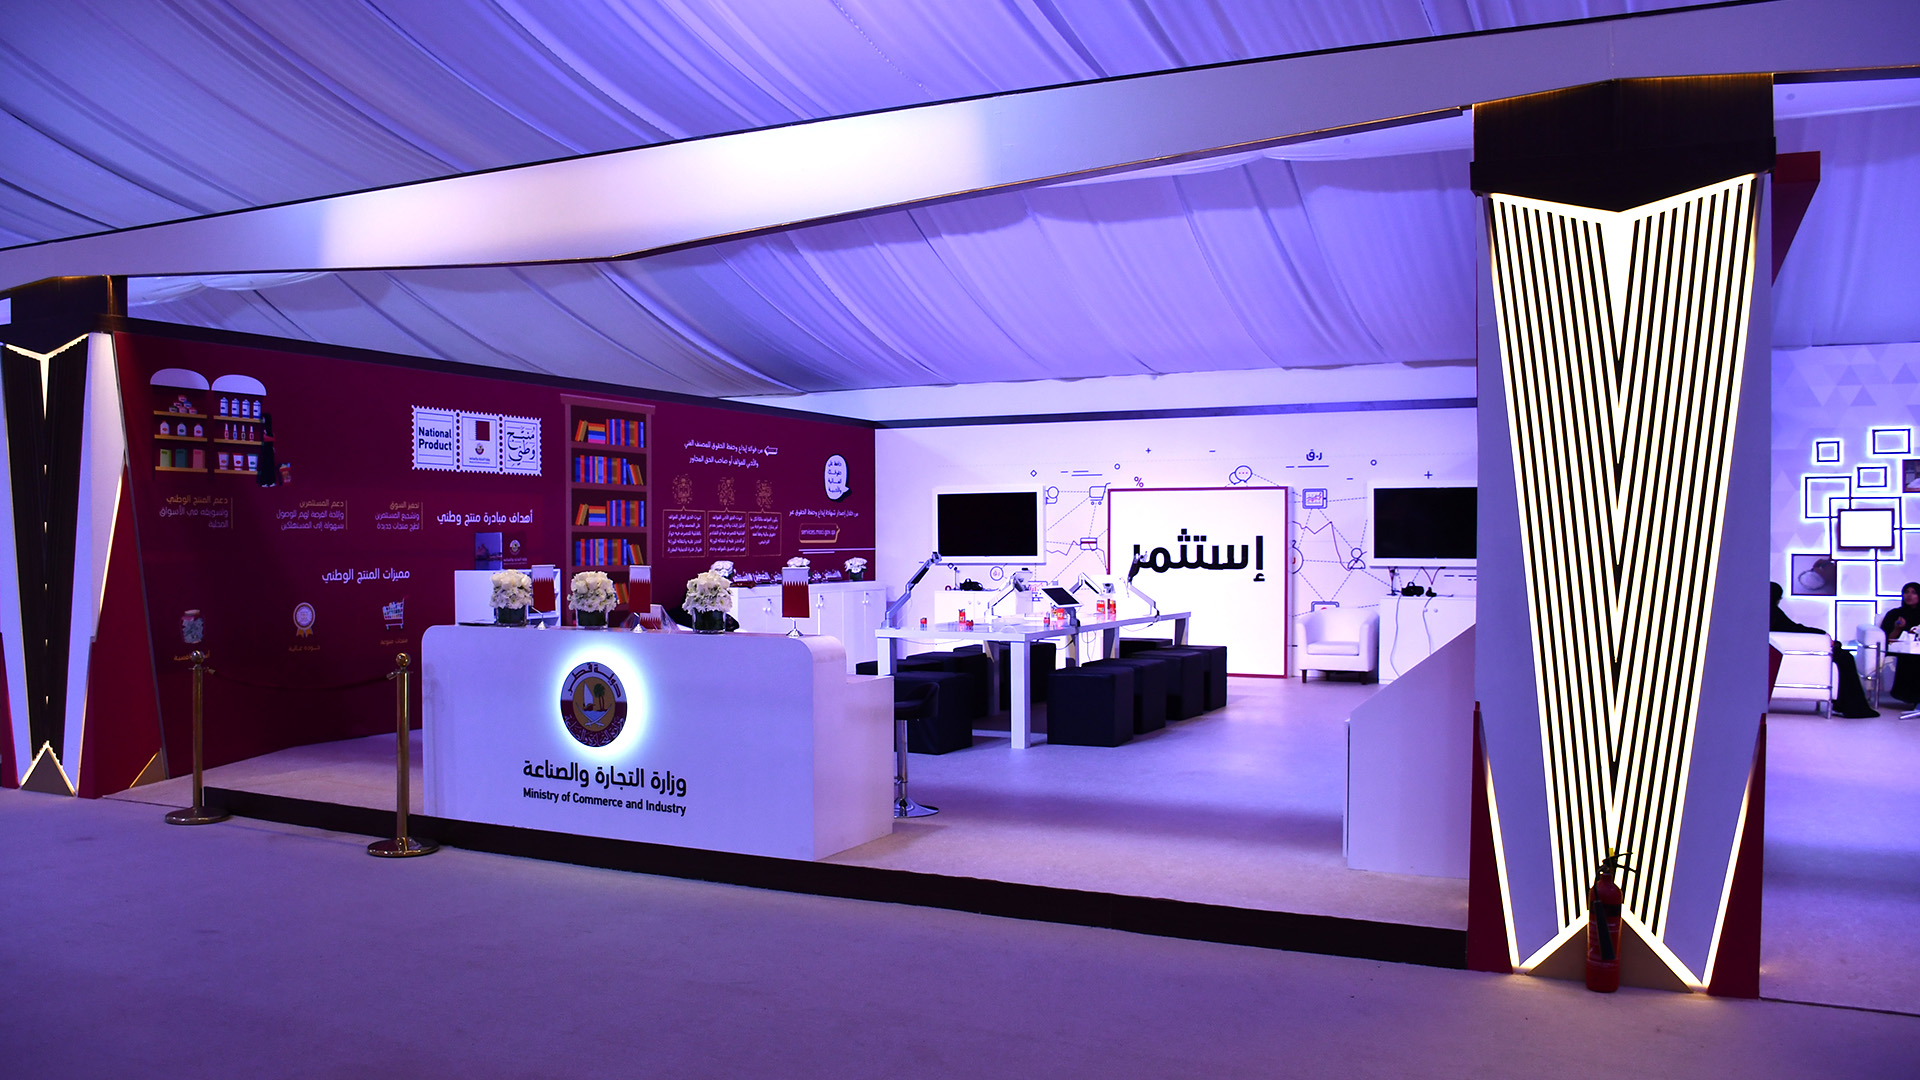 Exhibition Stand for Qatar's Ministry of Commerce and Industry at Darb Al Saai for National Day 2018 fabricated by ME Visual